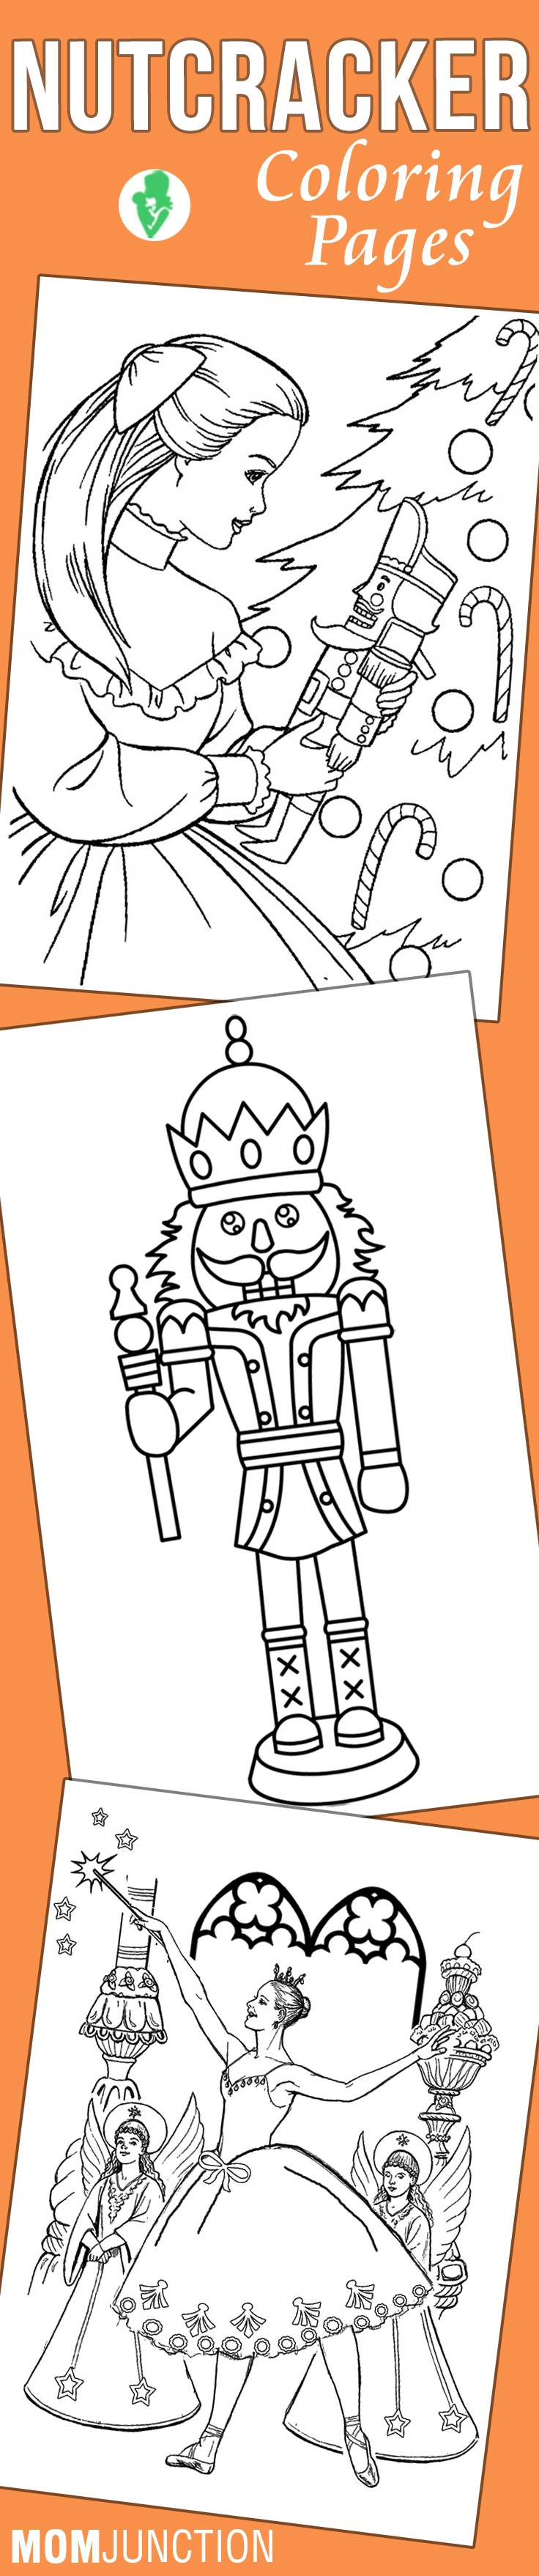 21 Nutcracker Coloring Pages Selection | FREE COLORING PAGES - Part 2